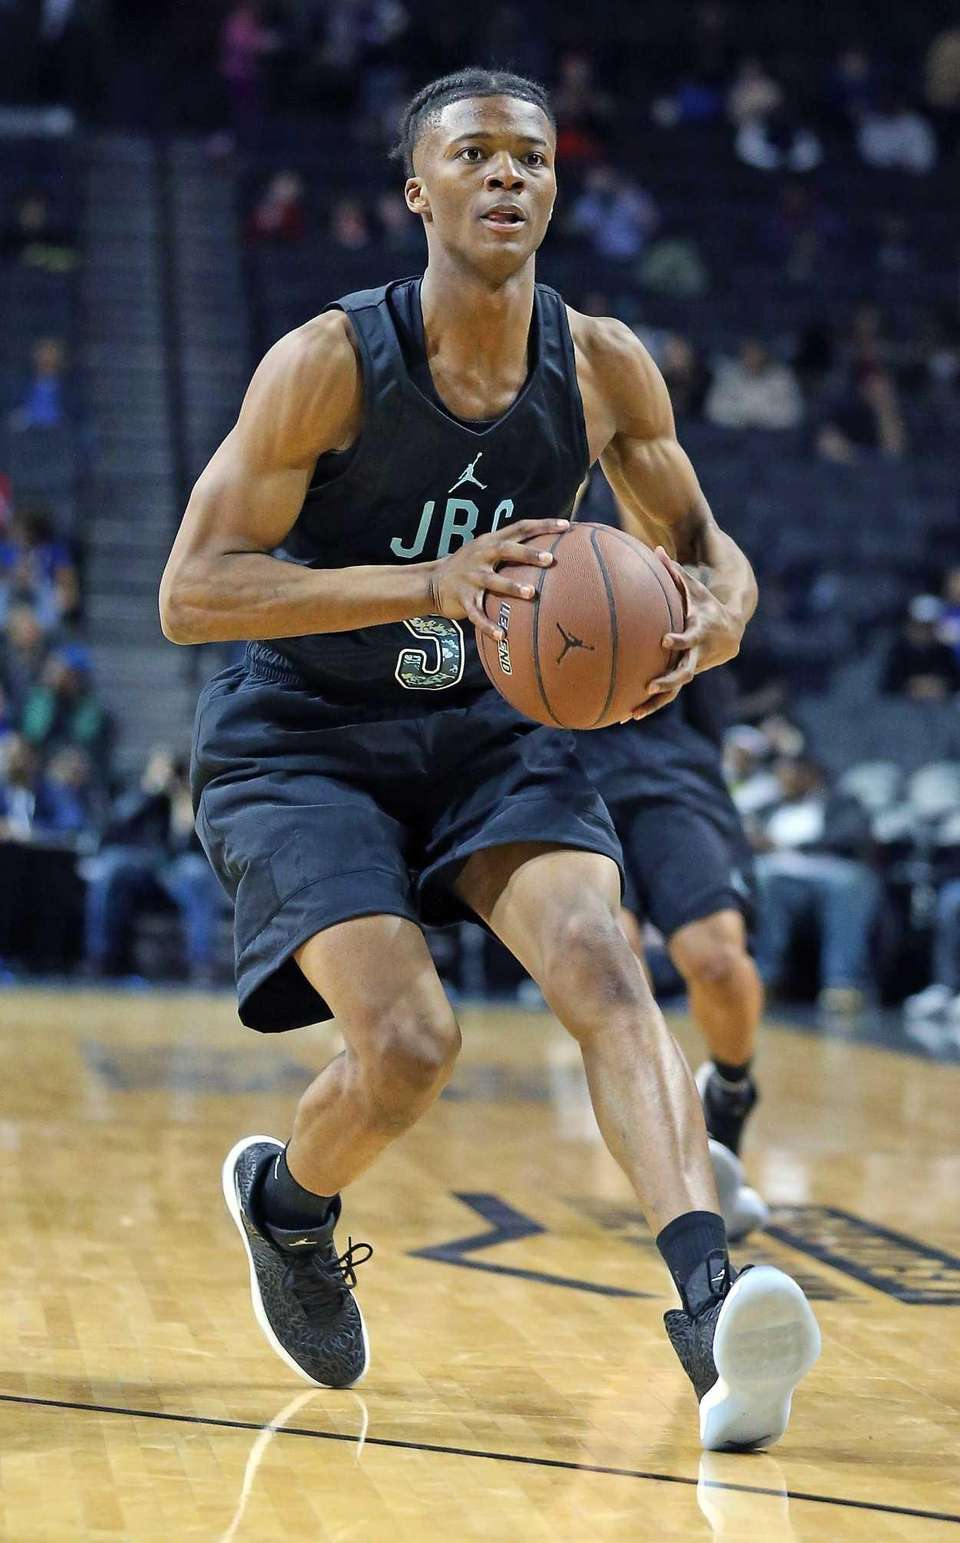 Cheshire Academy's Elijah Pemberton at the Jordan Brand